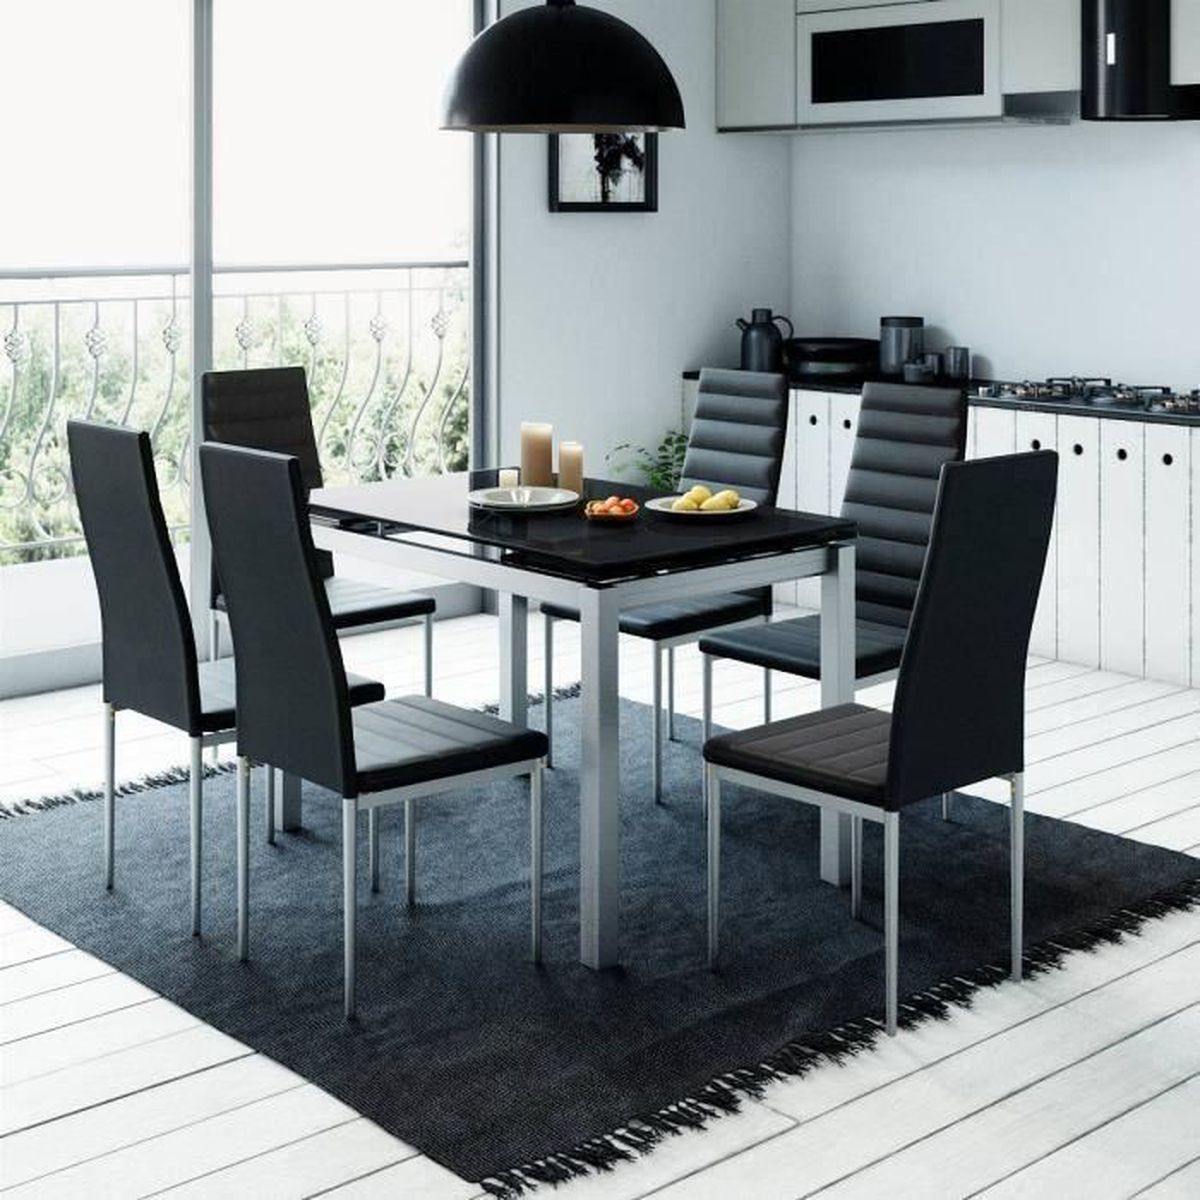 Table extensible noir achat vente table extensible for Table 6 chaises carrefour